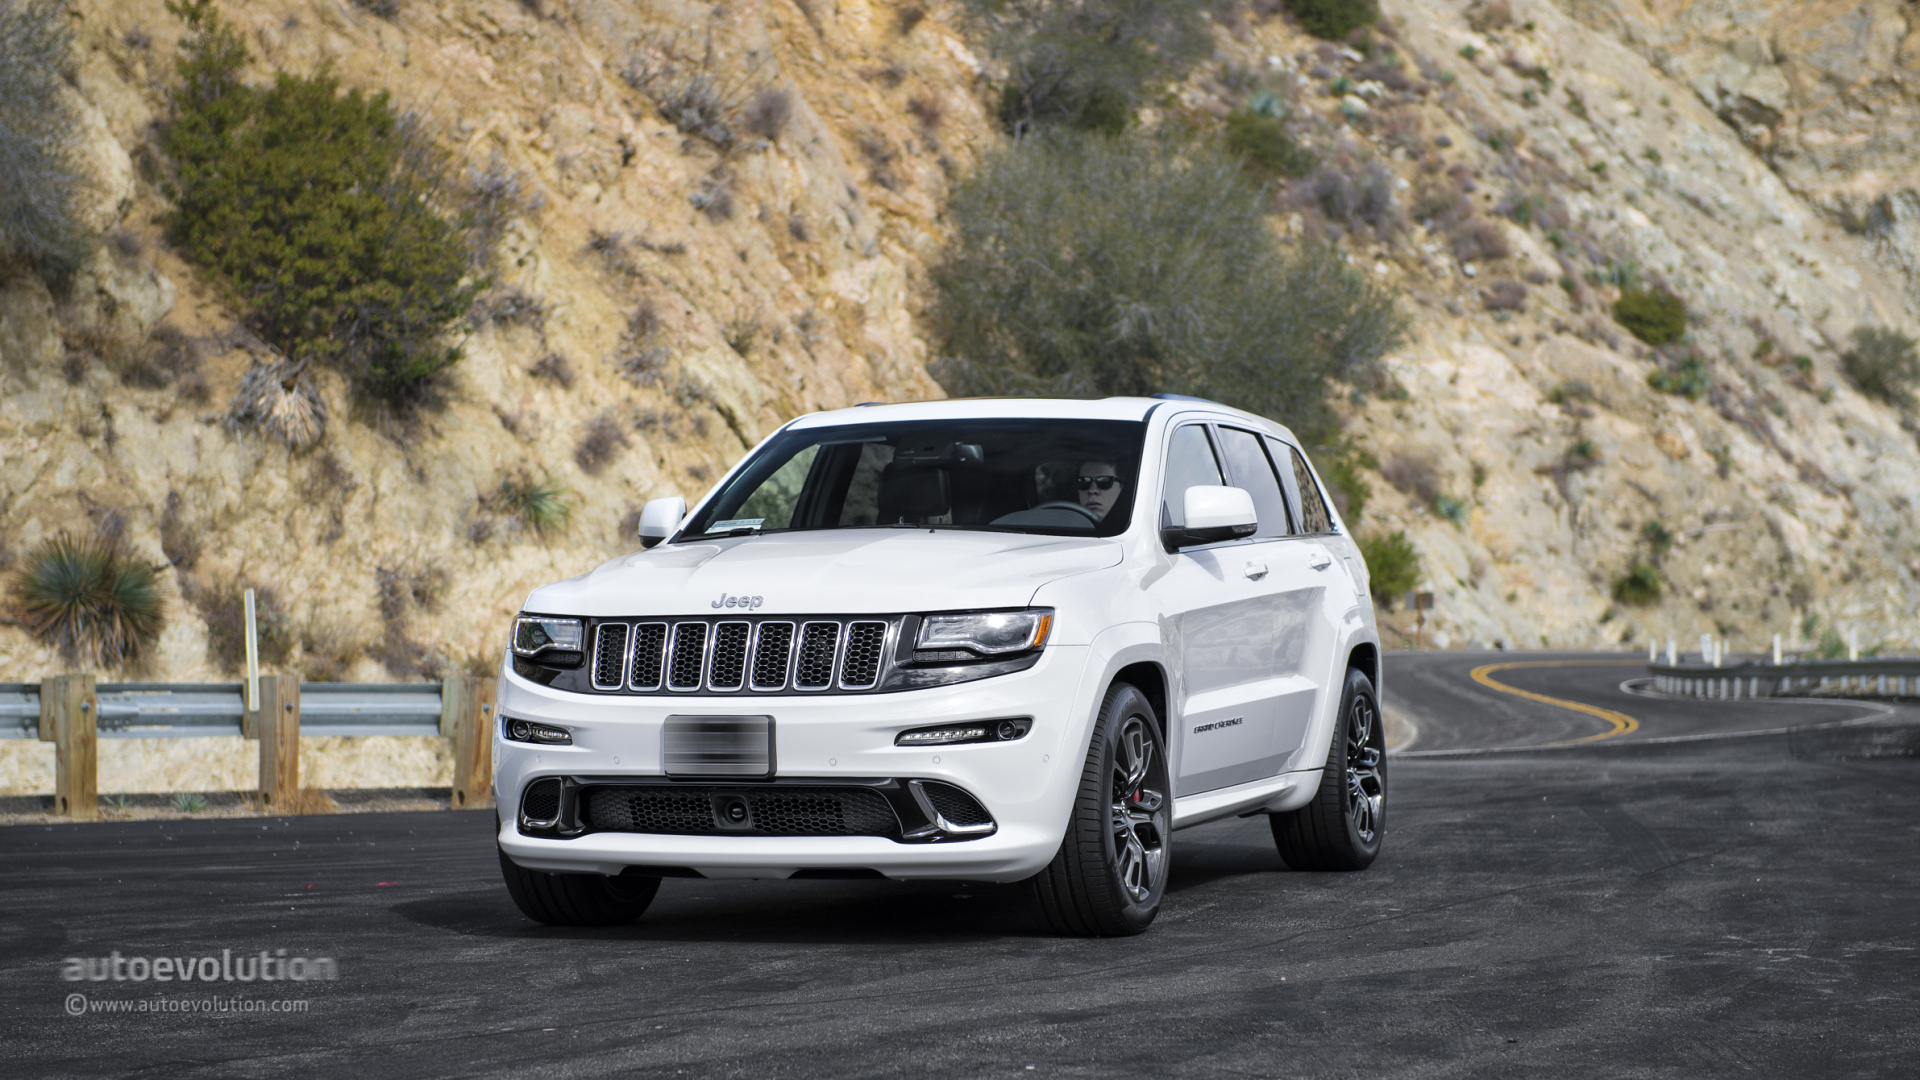 chrysler brands come in last in 2015 j d power customer service index. Cars Review. Best American Auto & Cars Review